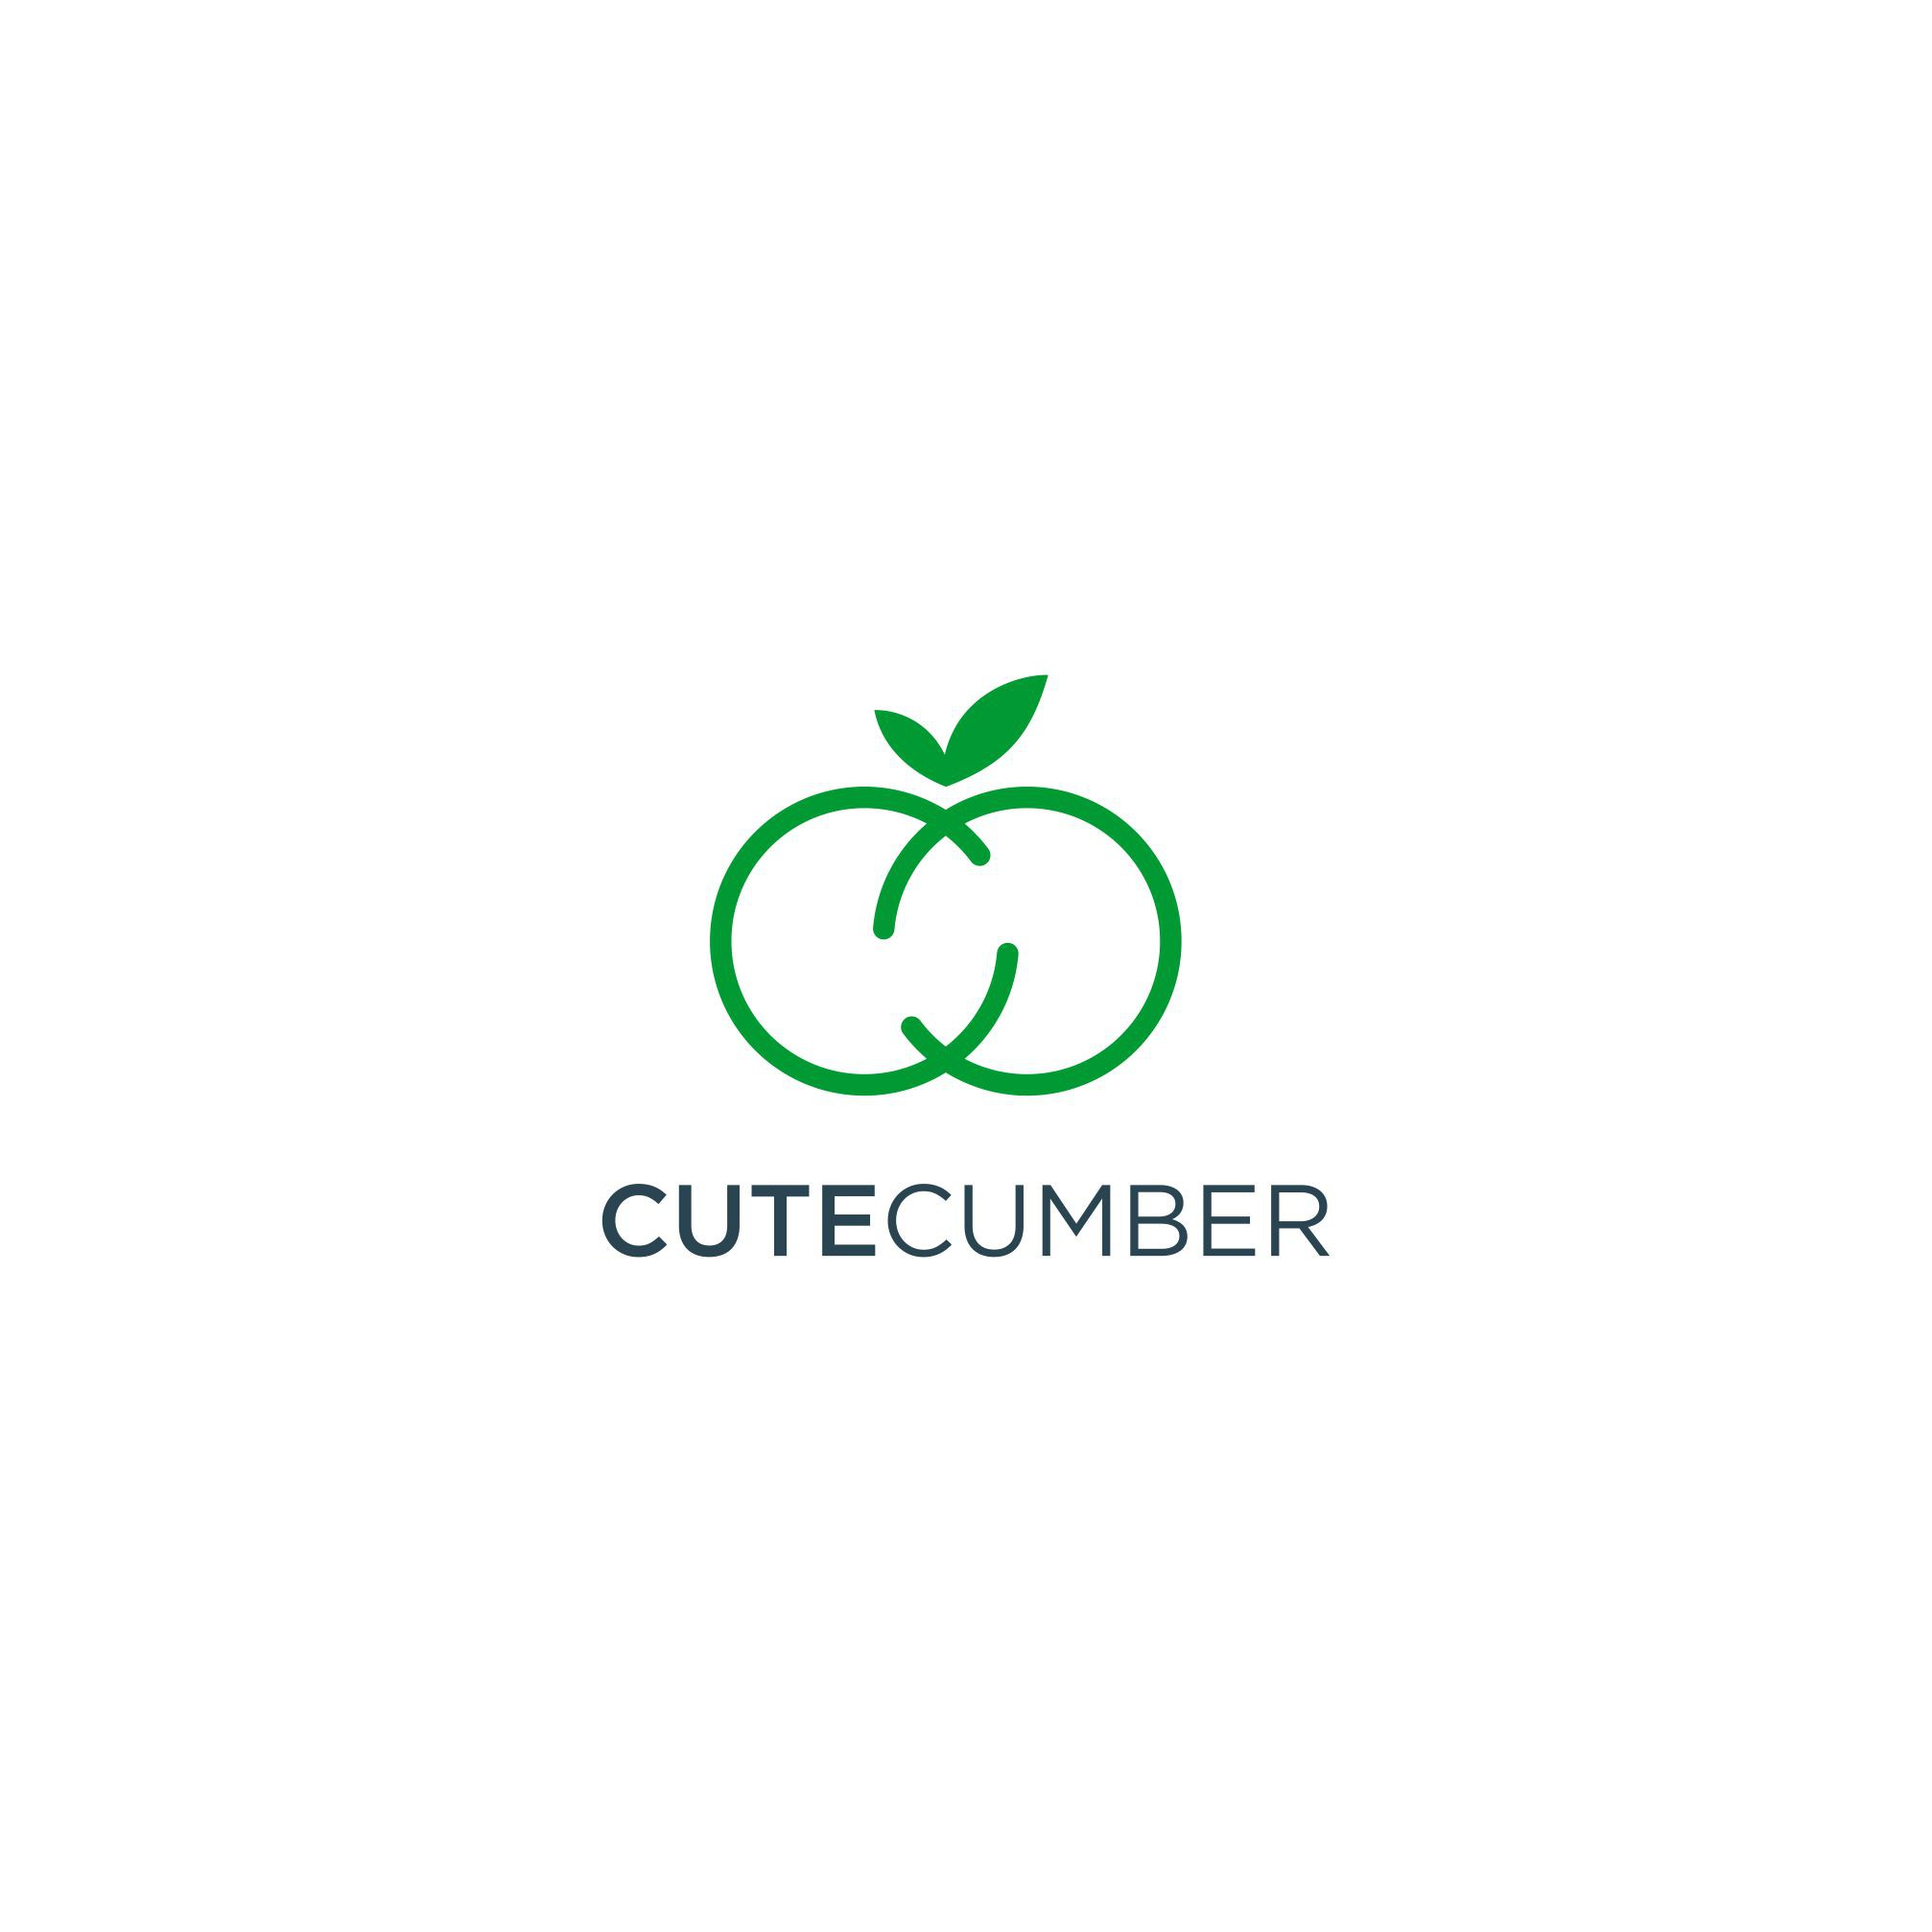 The CuteCumber dating app needs a new logo